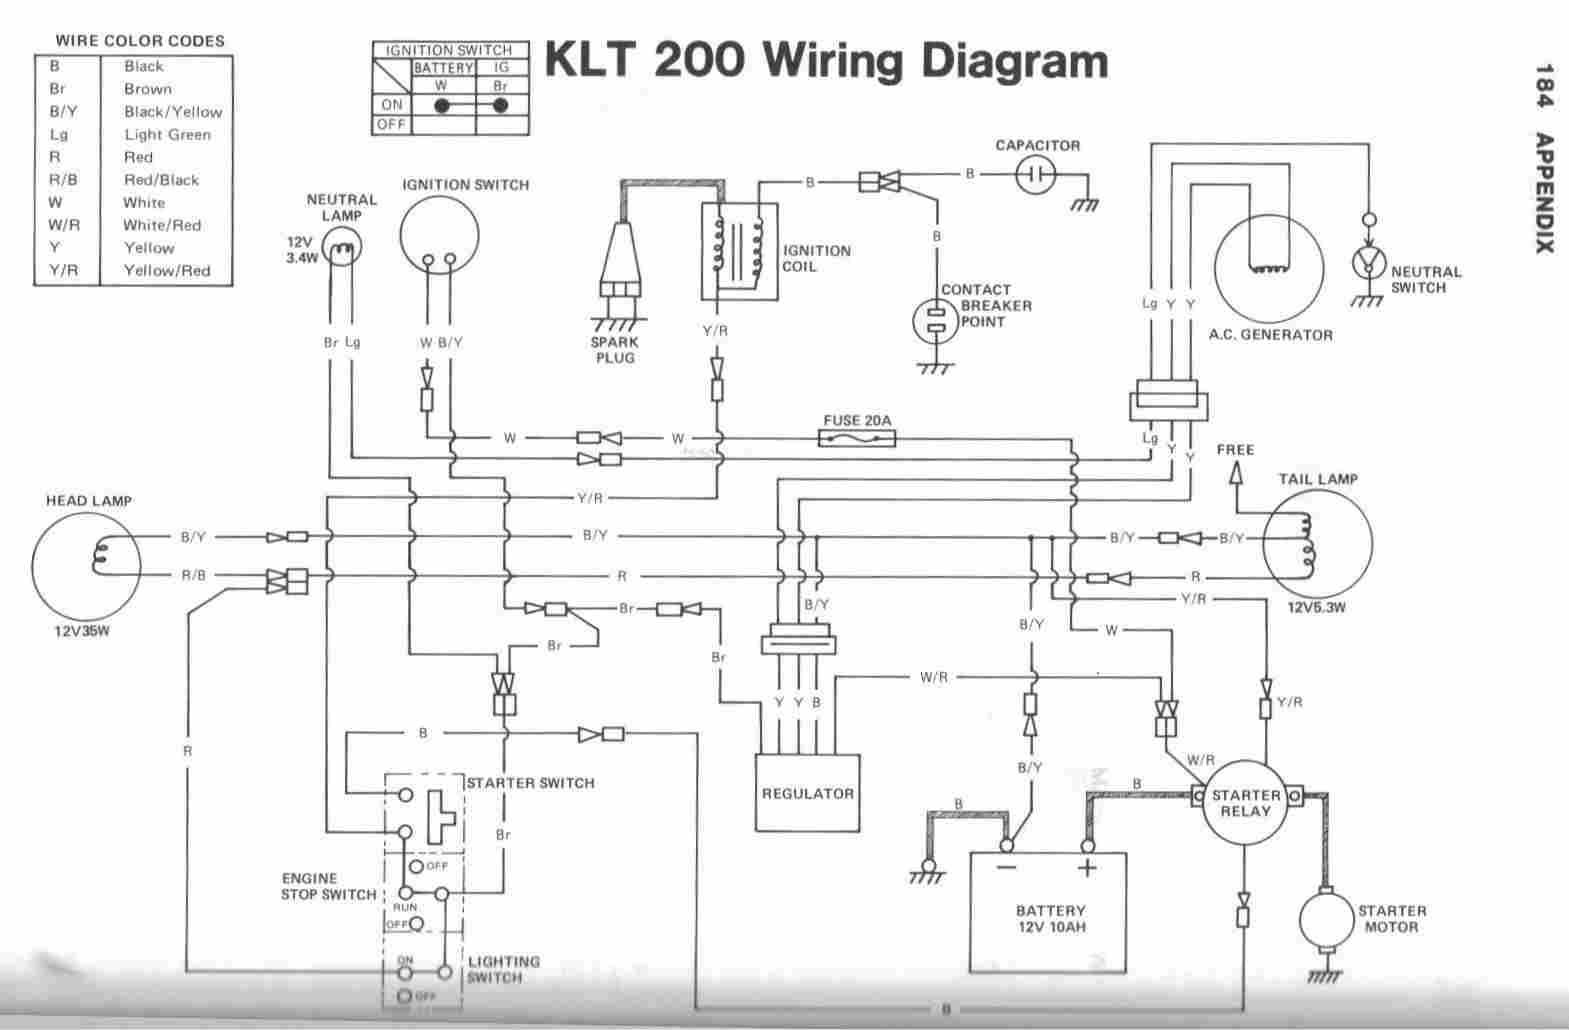 2869034594ce054a636782e5c44b61b4 wiring diagrams \u2022 woorishop co  at soozxer.org